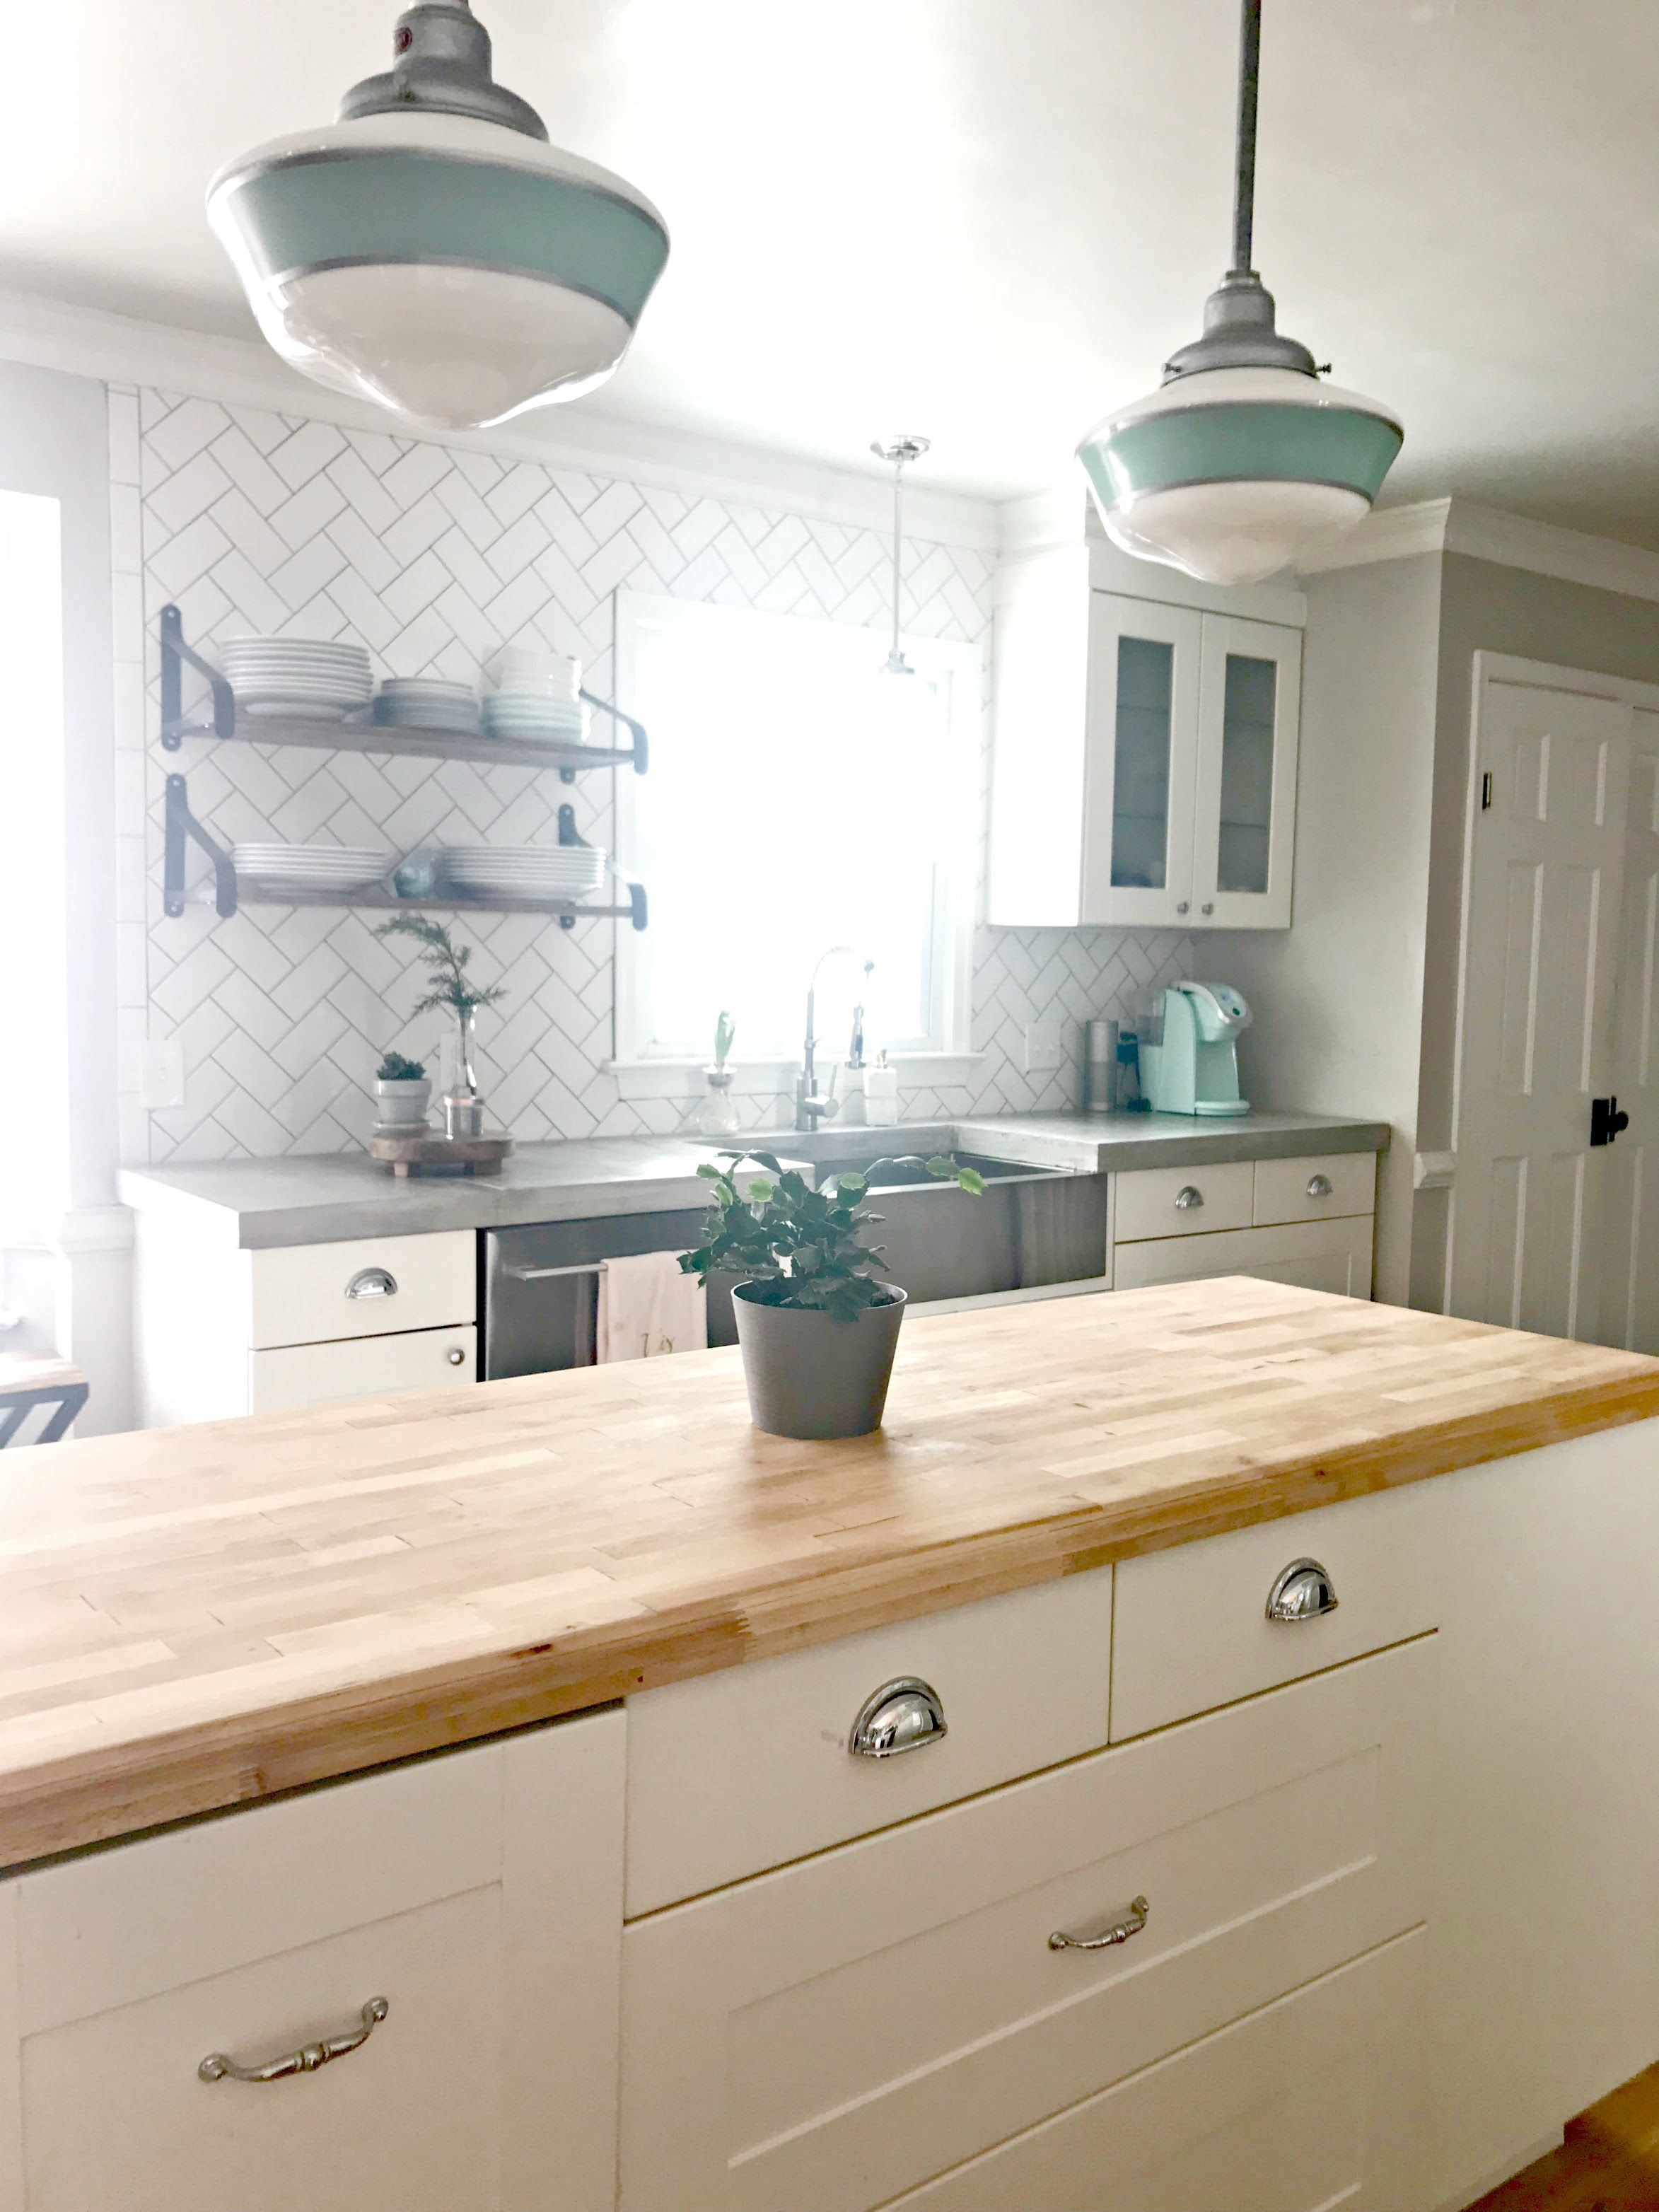 Concrete Countertops and more kitchen updates   Simply Swider Blog ...